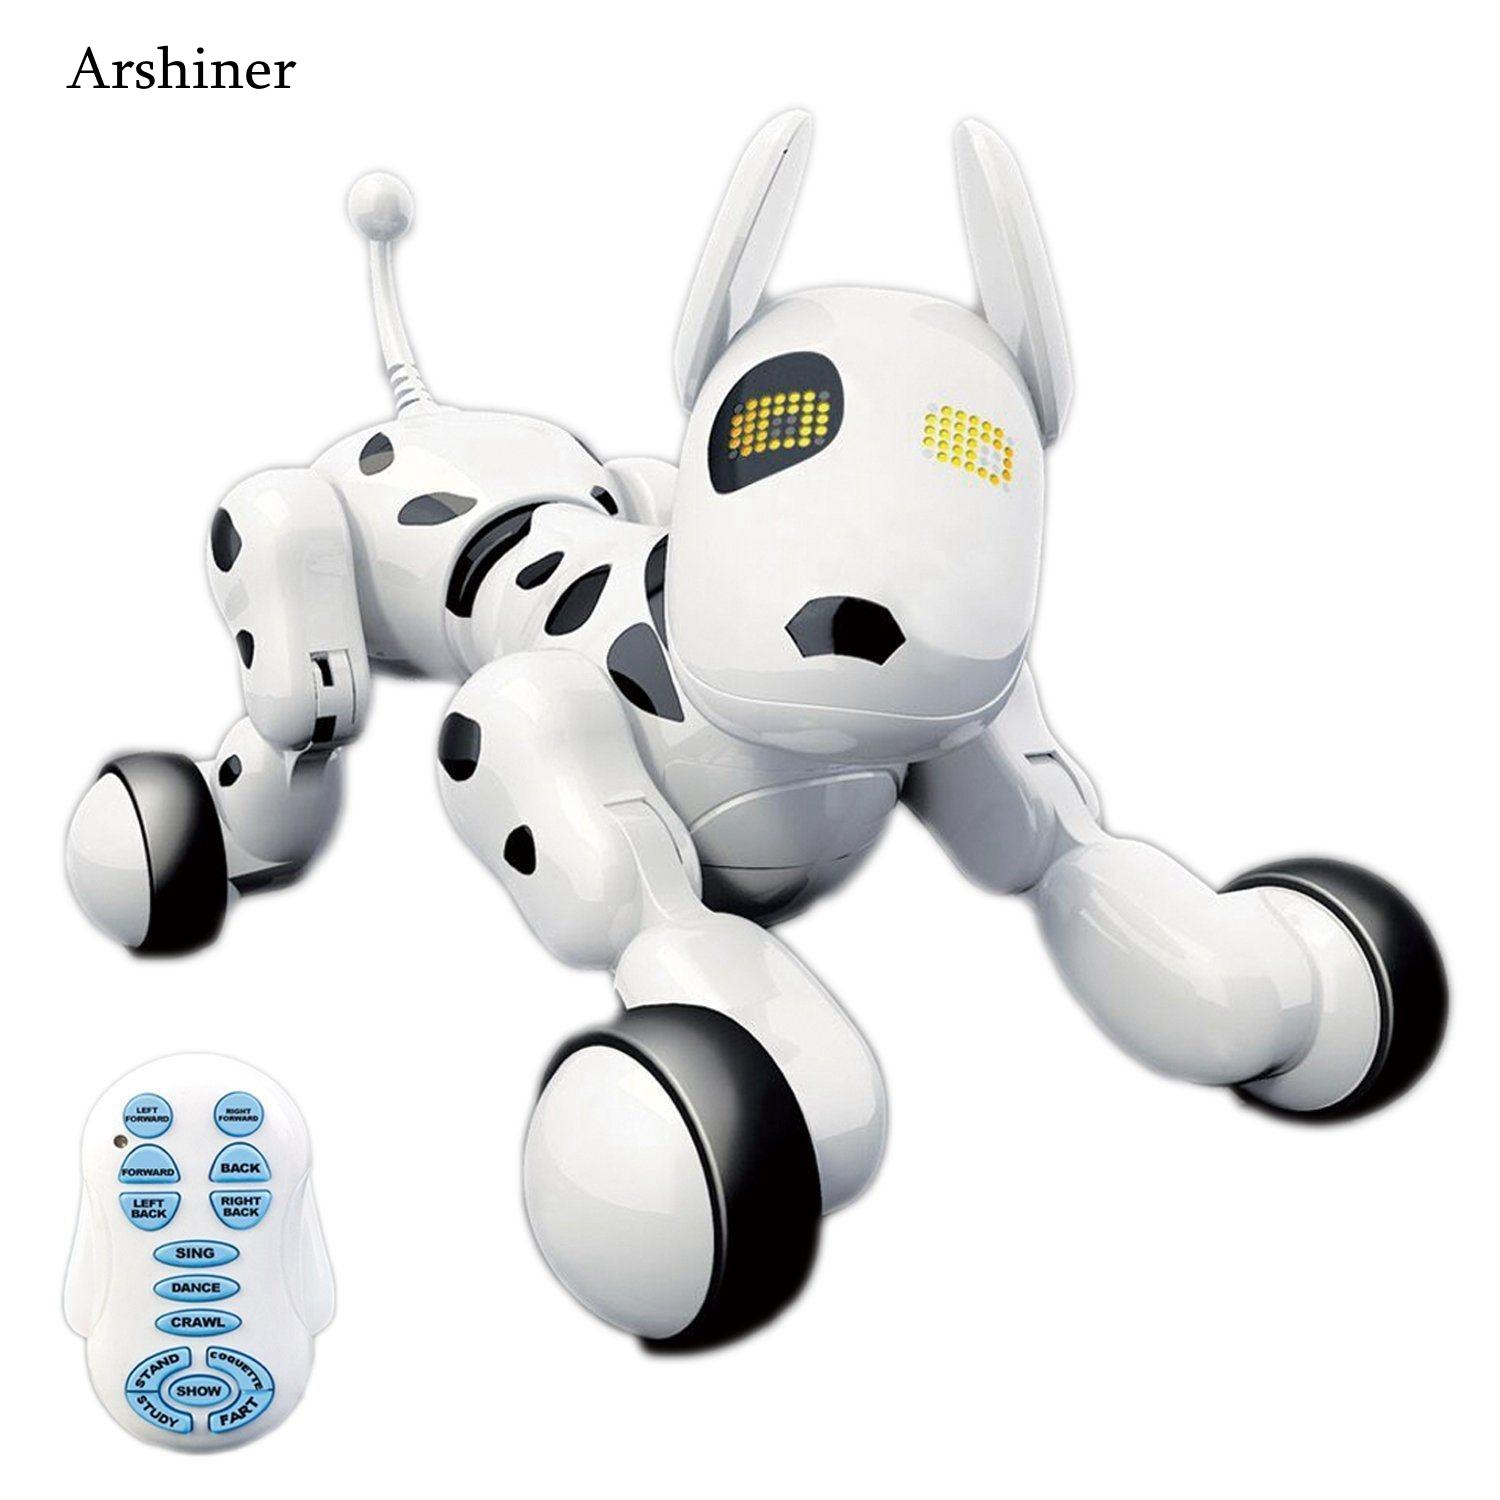 Newest Wireless remote control smart robot dog electric dog early education educational toys for children(White)